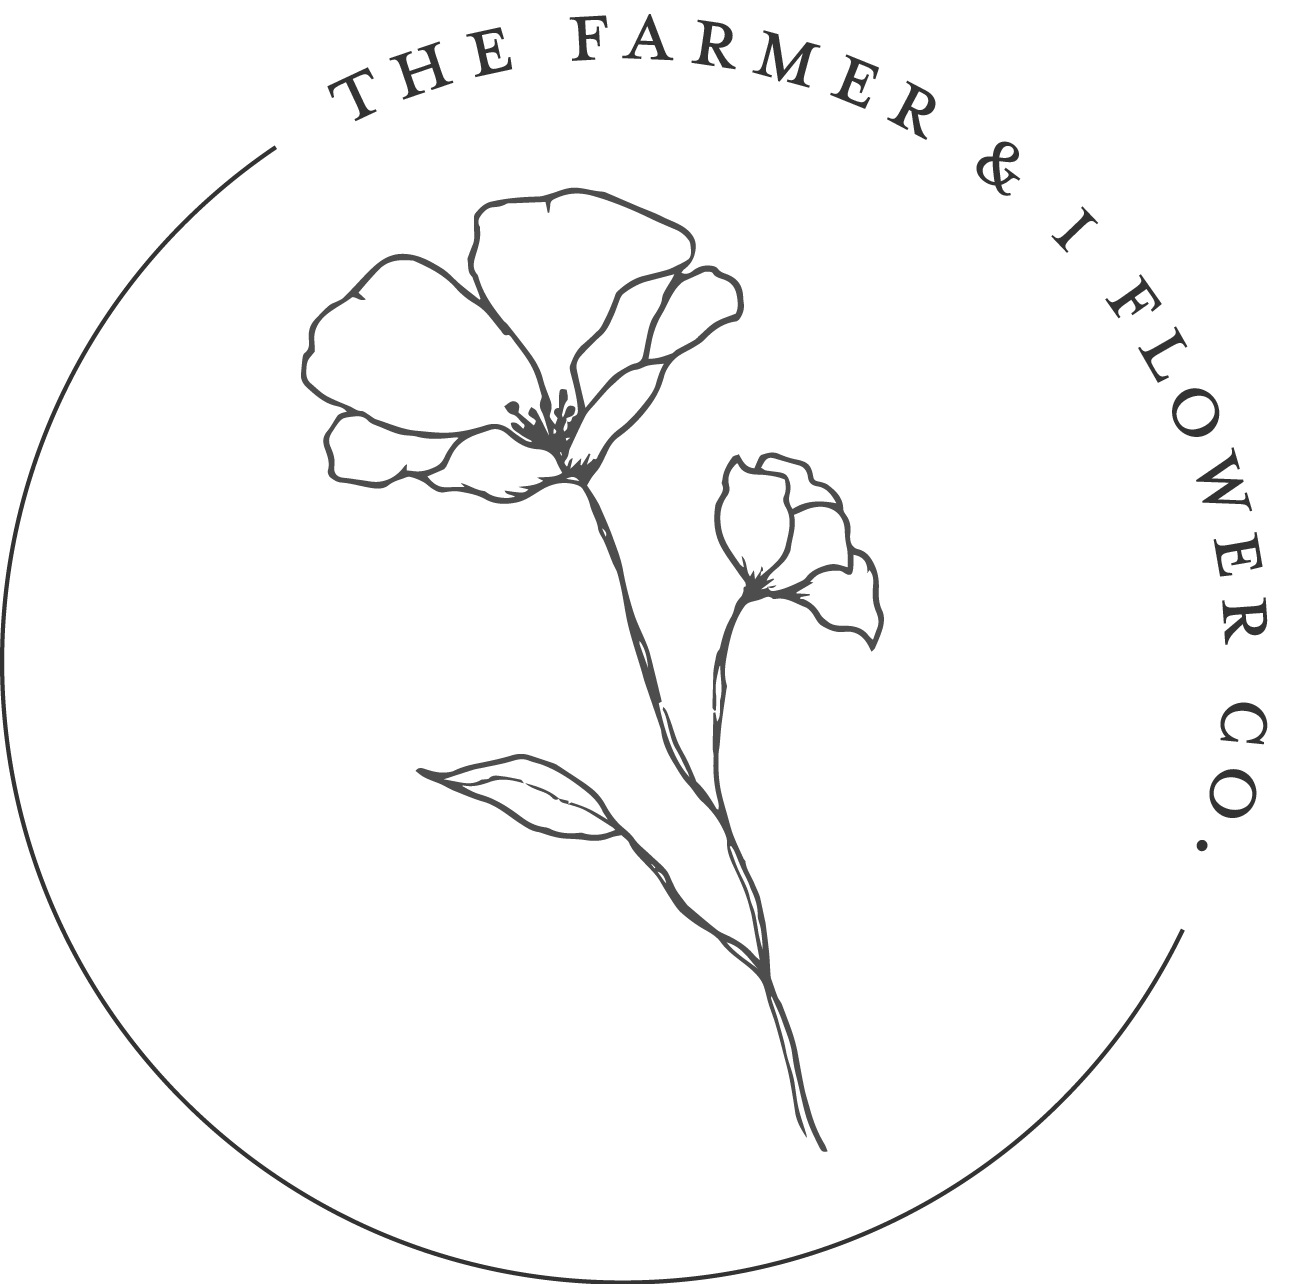 Austin Wedding Florist | The Farmer and I Flower Co. | Flowers for Weddings in ATX | Wimberley Based Floral Designer